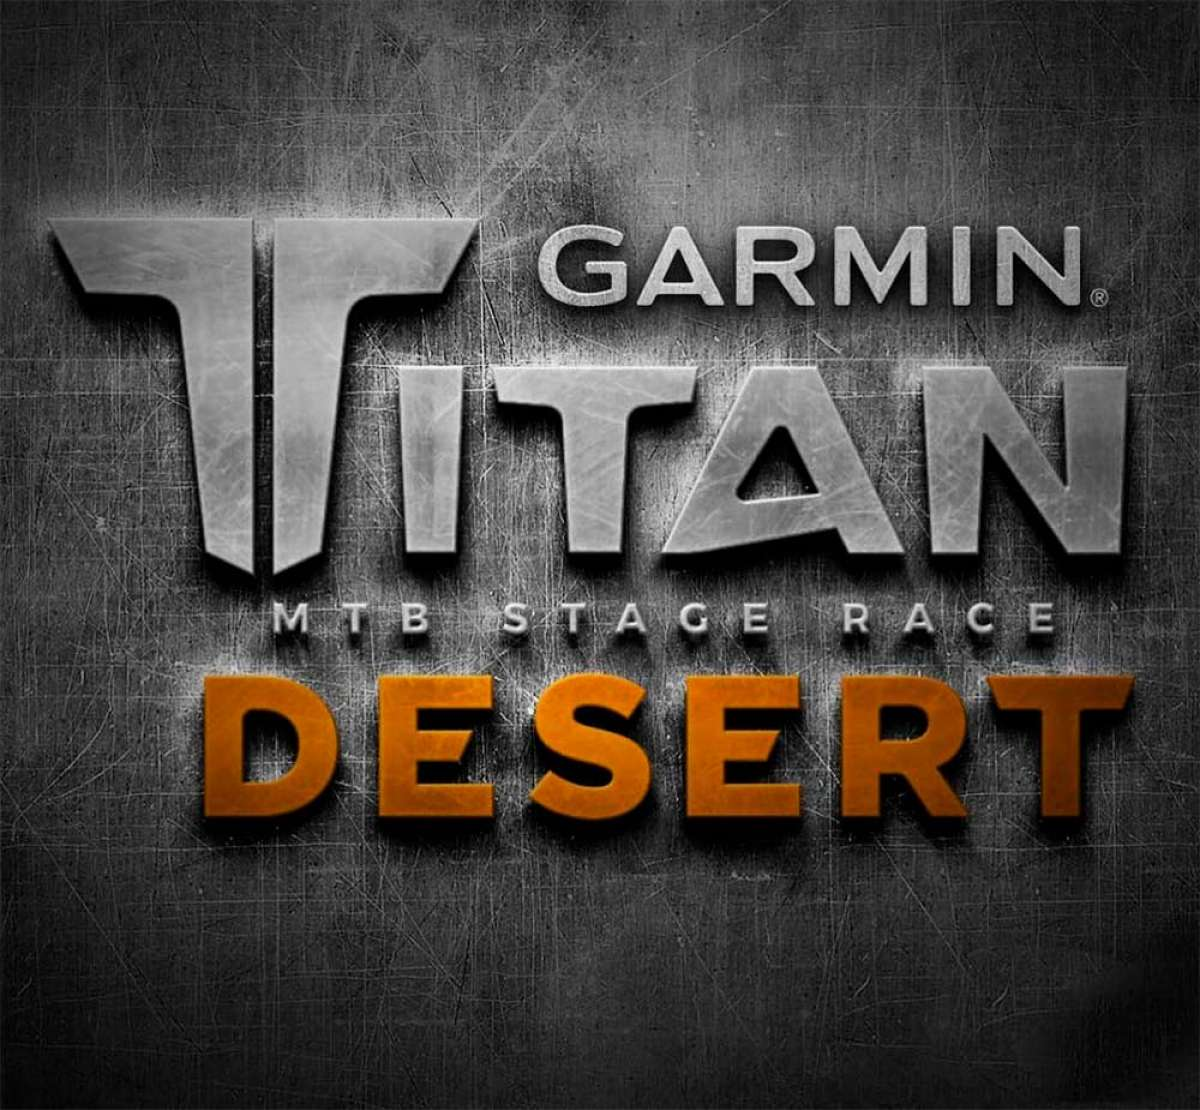 At TodoMountainBike: Garmin Titan Desert 2019: from 28 April to 3 May, with 6 stages and more than 600 km of route